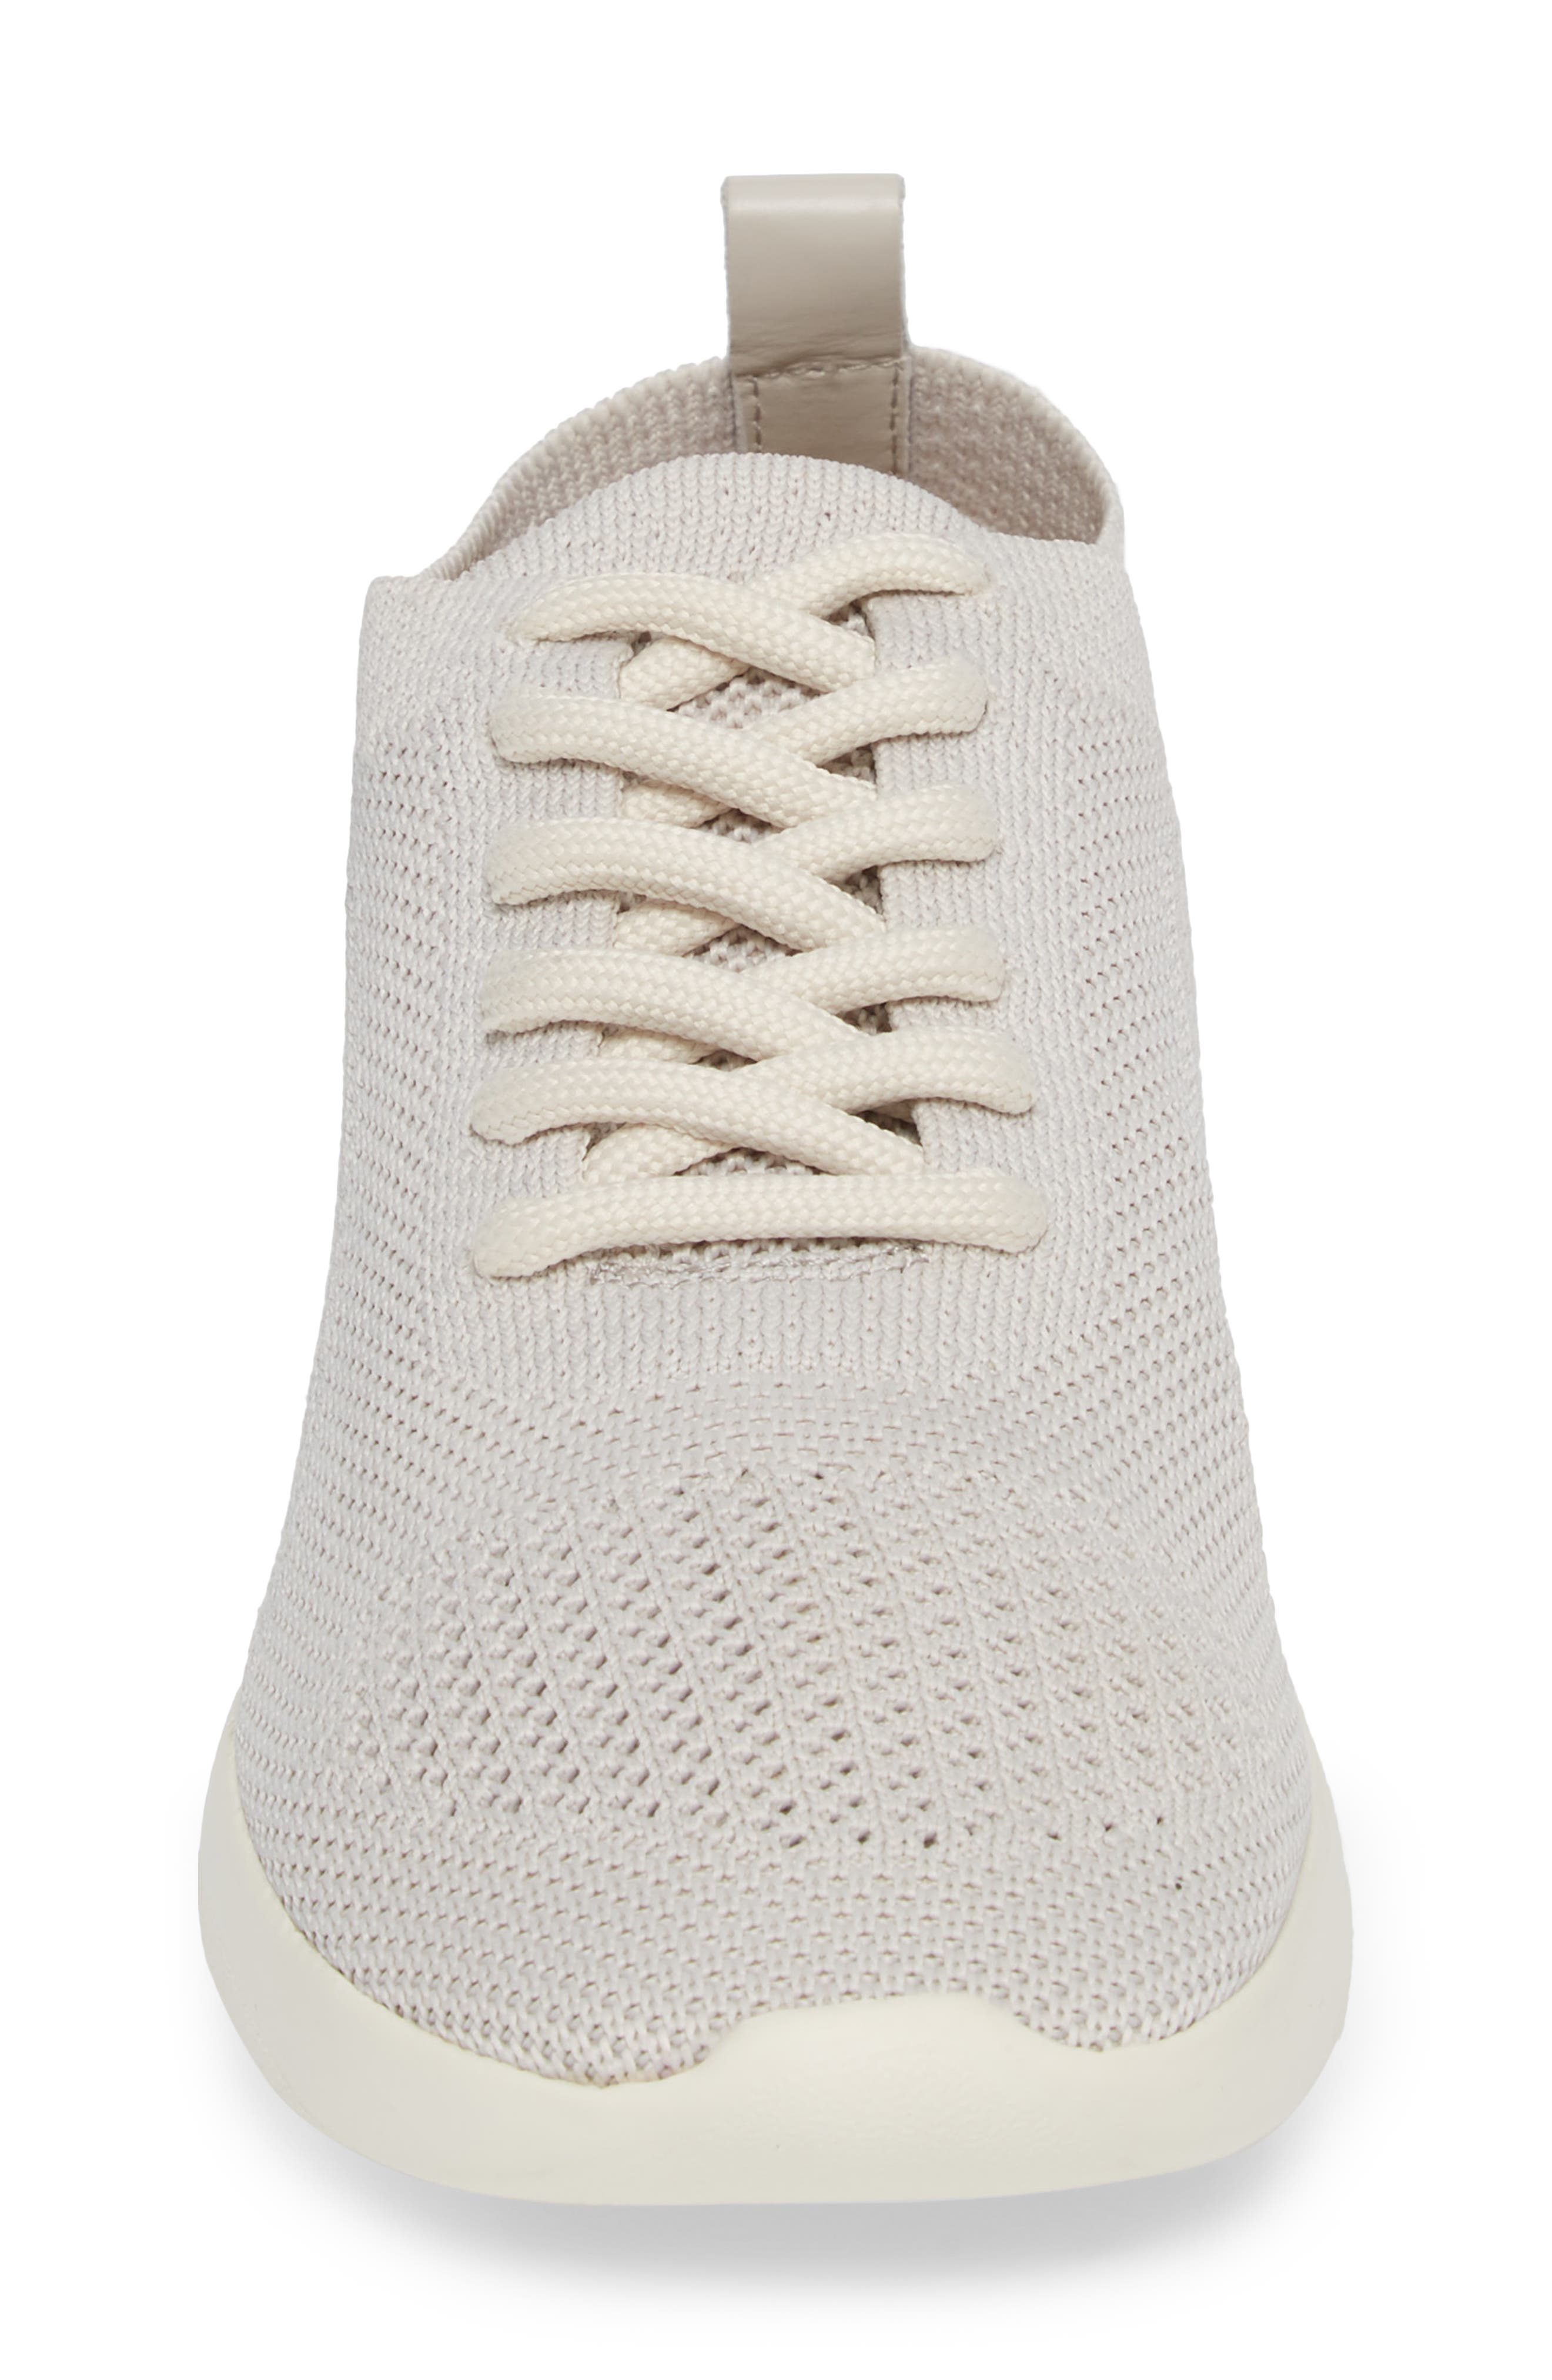 Randee Sneaker,                             Alternate thumbnail 4, color,                             MOON FABRIC